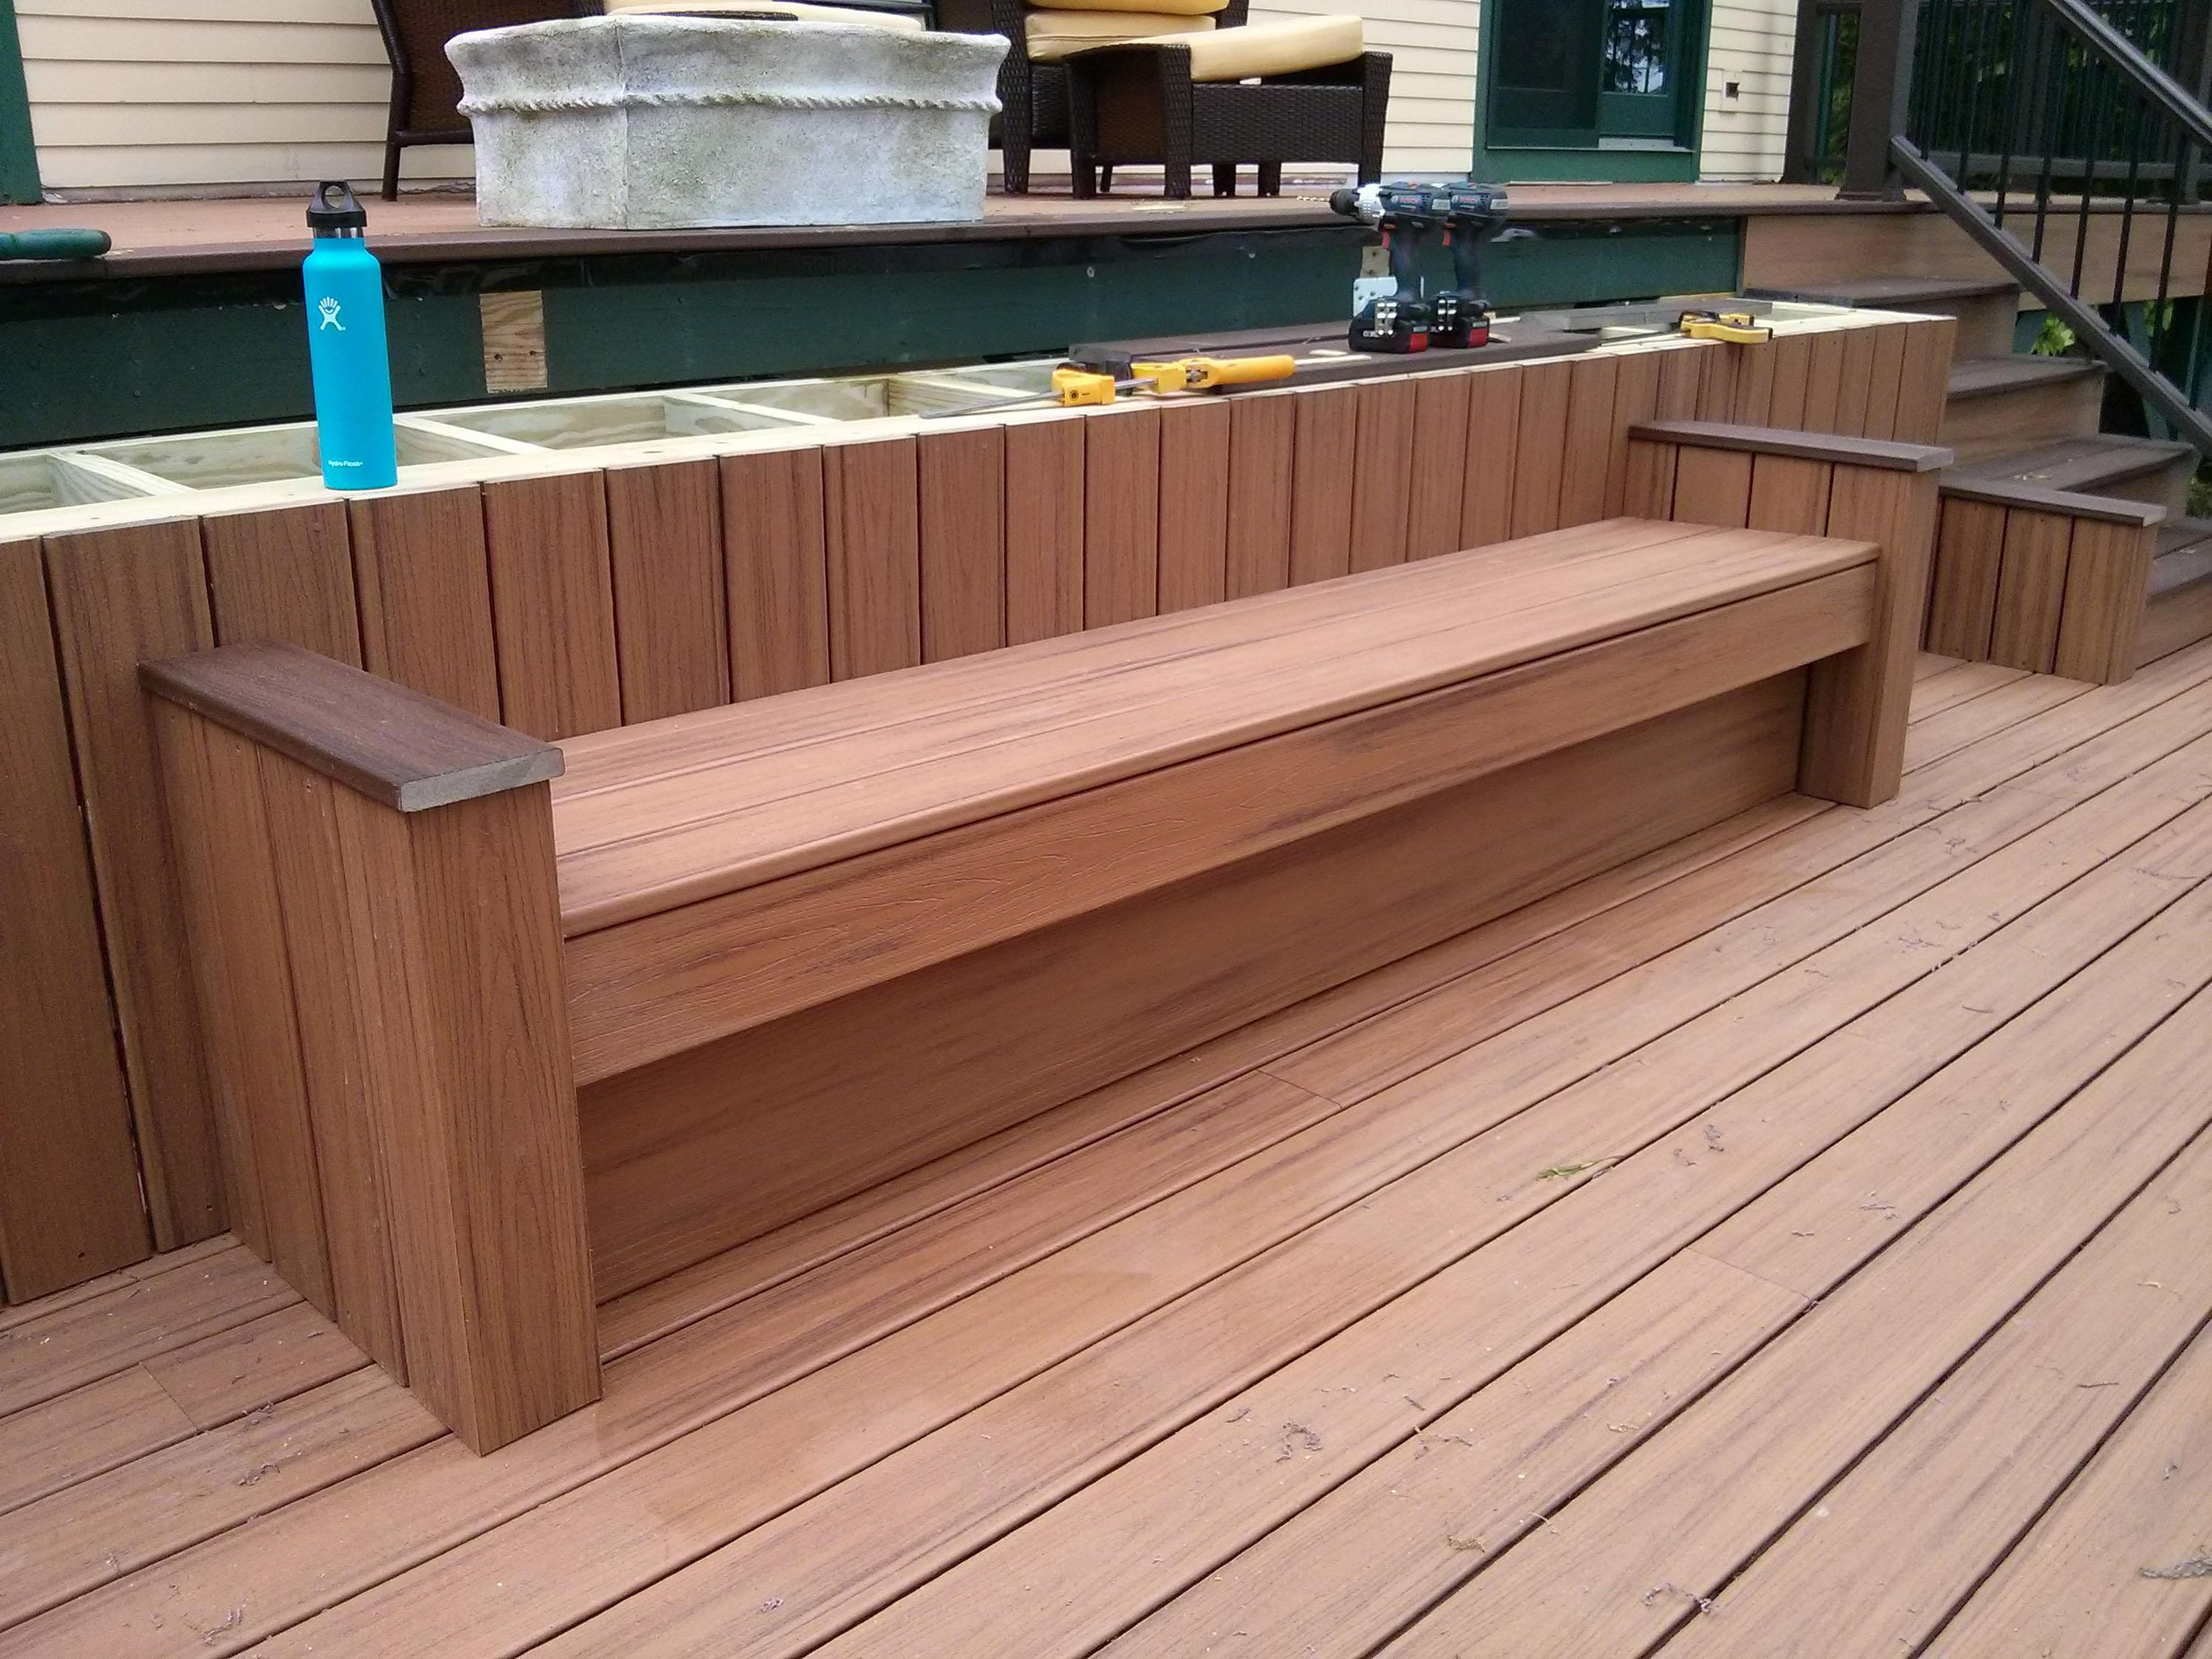 This Deck Bench Seat Is Complete The Shelf Above Needs To Be Covered But